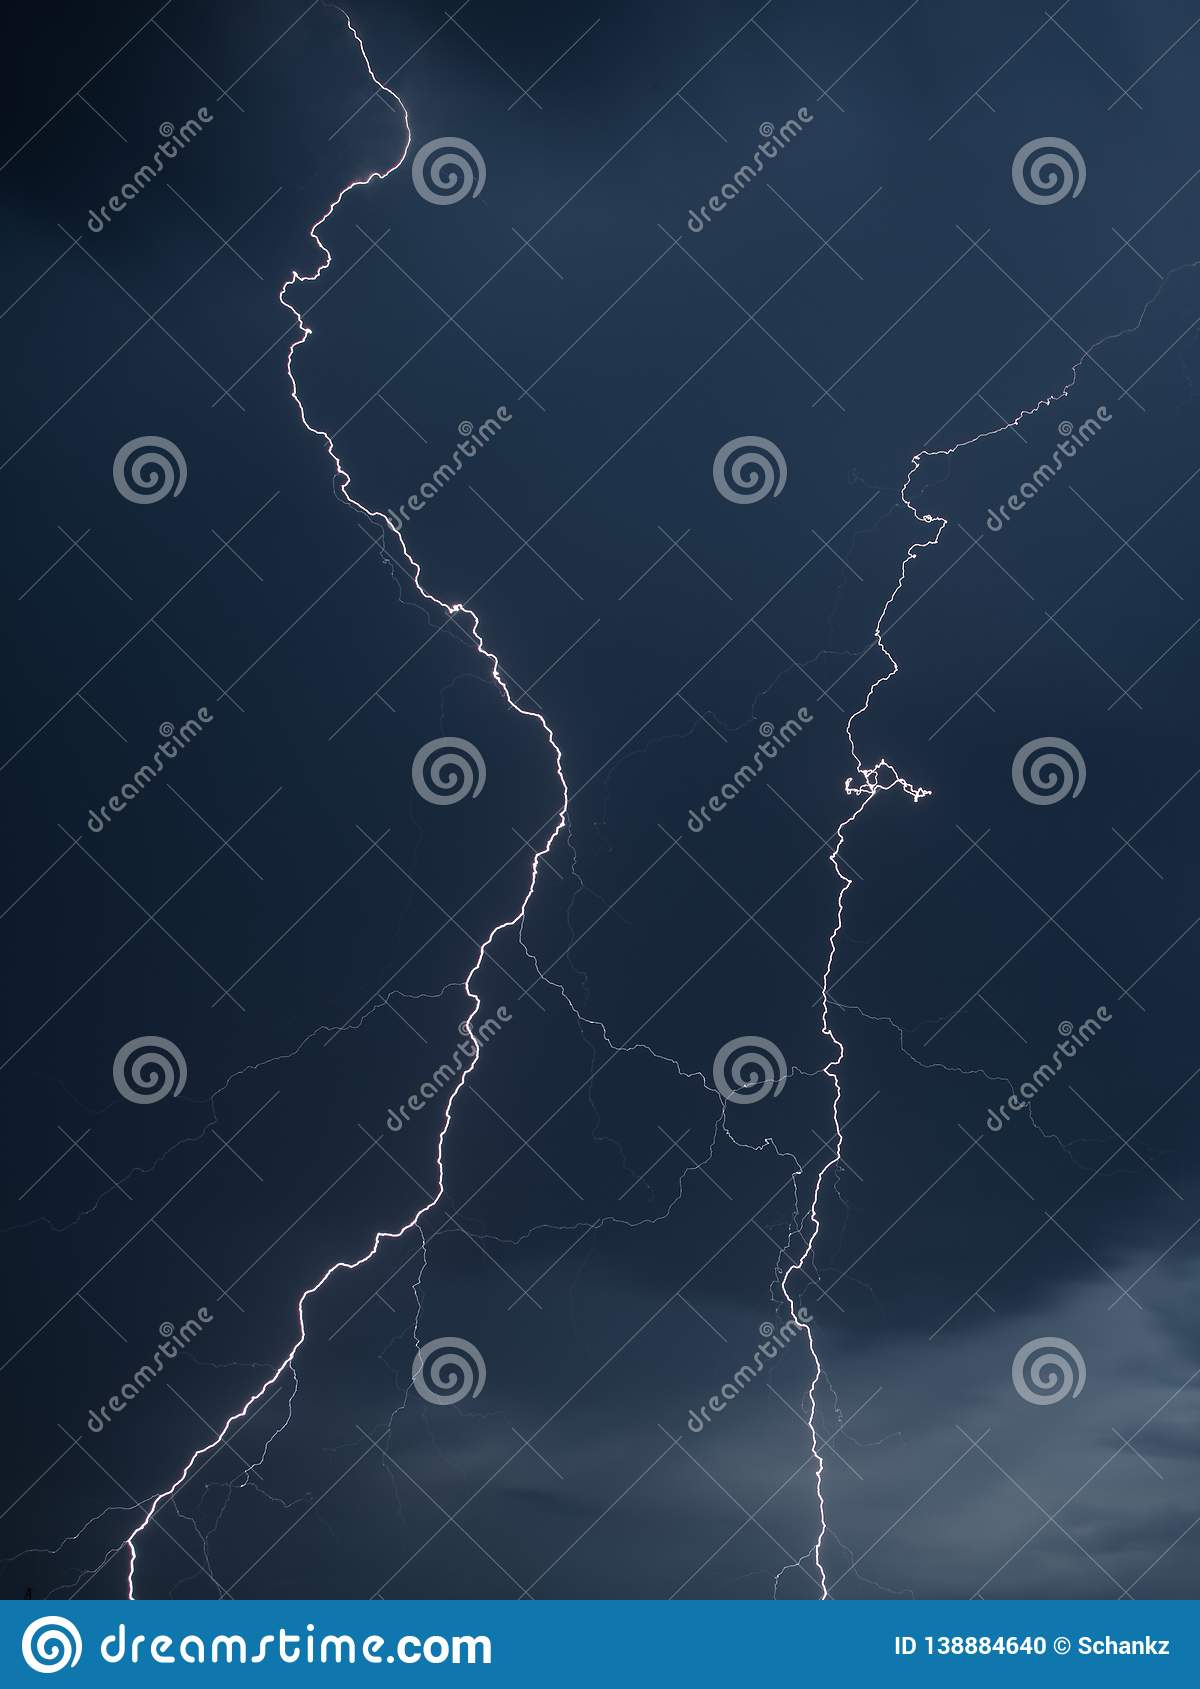 The discharge of lightning in the sky as a background